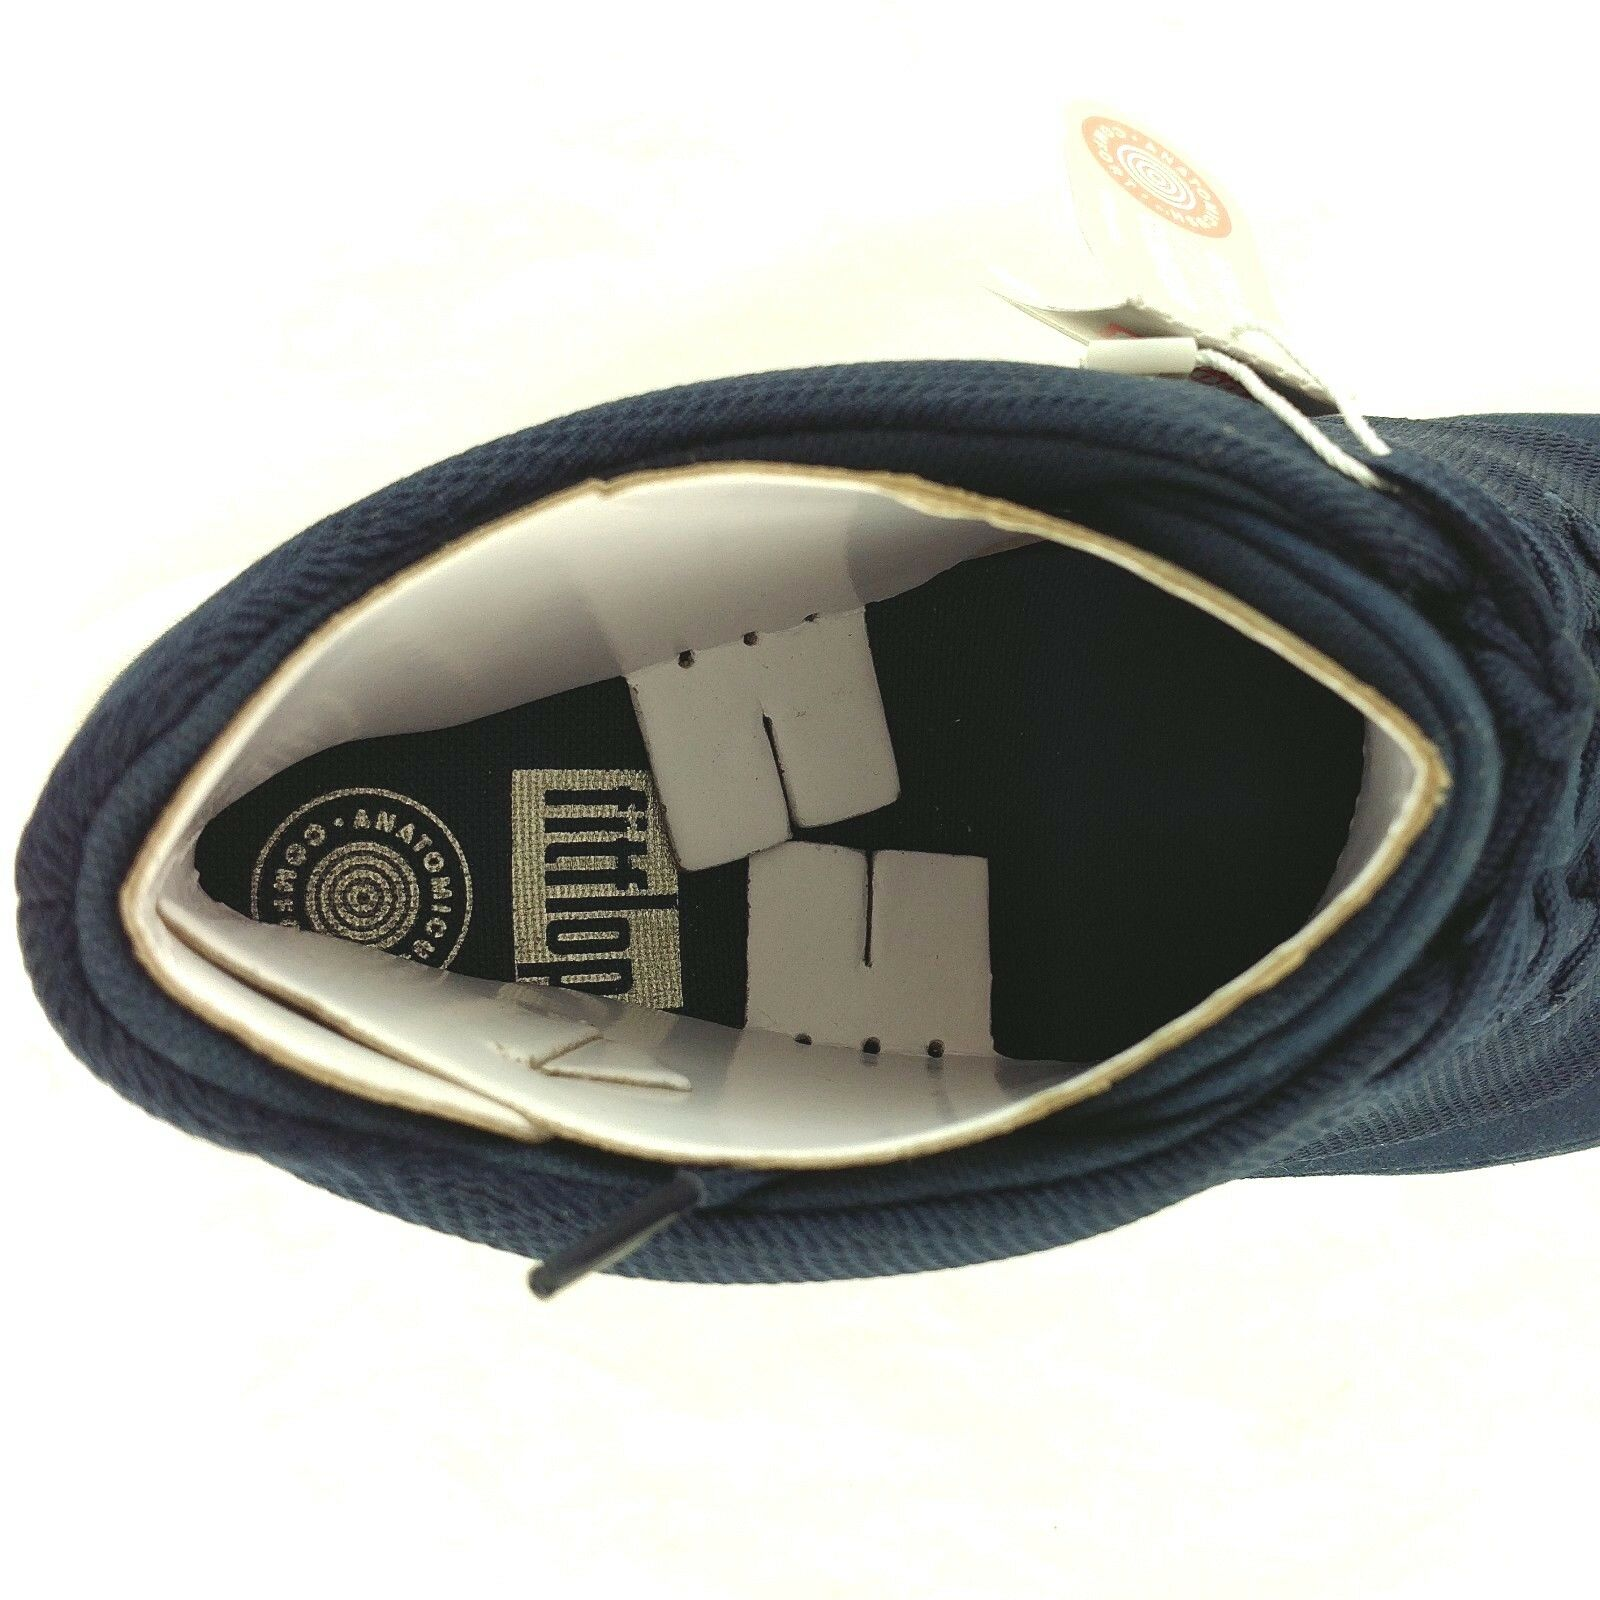 Fitflop,  Herren Schuhes, Sporty Canvas, Pop High Top in Canvas, Sporty Midnight Blau, UK 10 EUR 44 8690b6